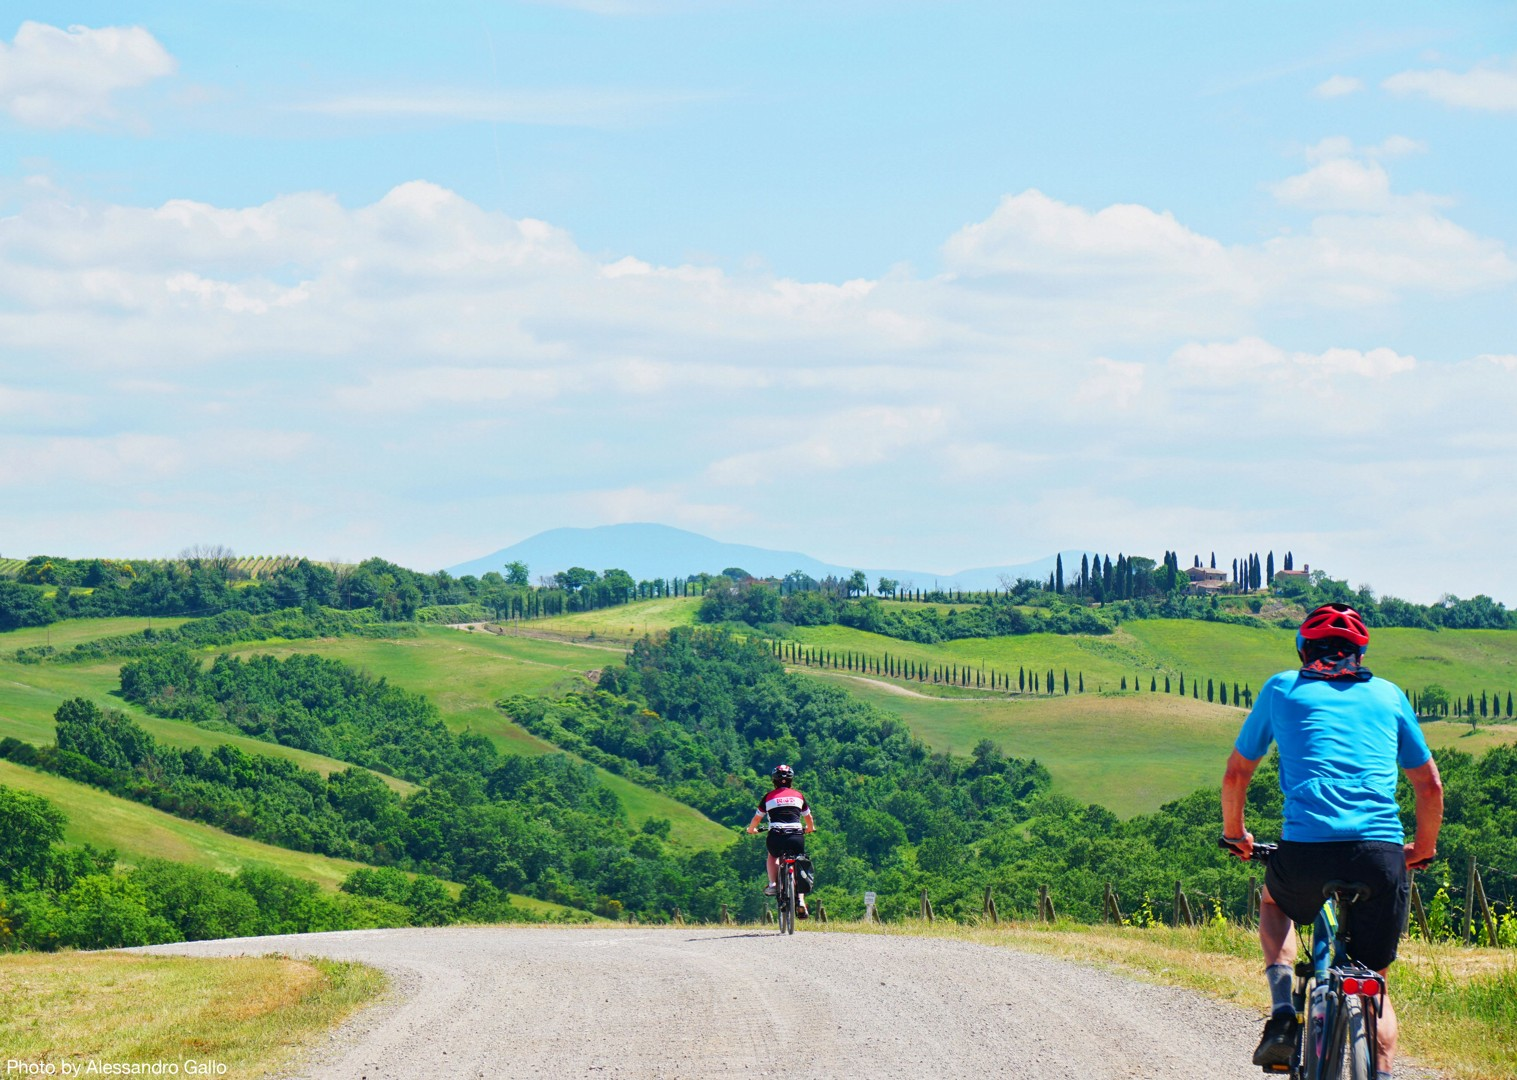 Italy-Via-Francigena-Tuscany-to-Rome-Guided-Leisure-Cycling-Holiday-leisure-cycling - Italy - Via Francigena (Tuscany to Rome) - Guided Leisure Cycling Holiday - Leisure Cycling